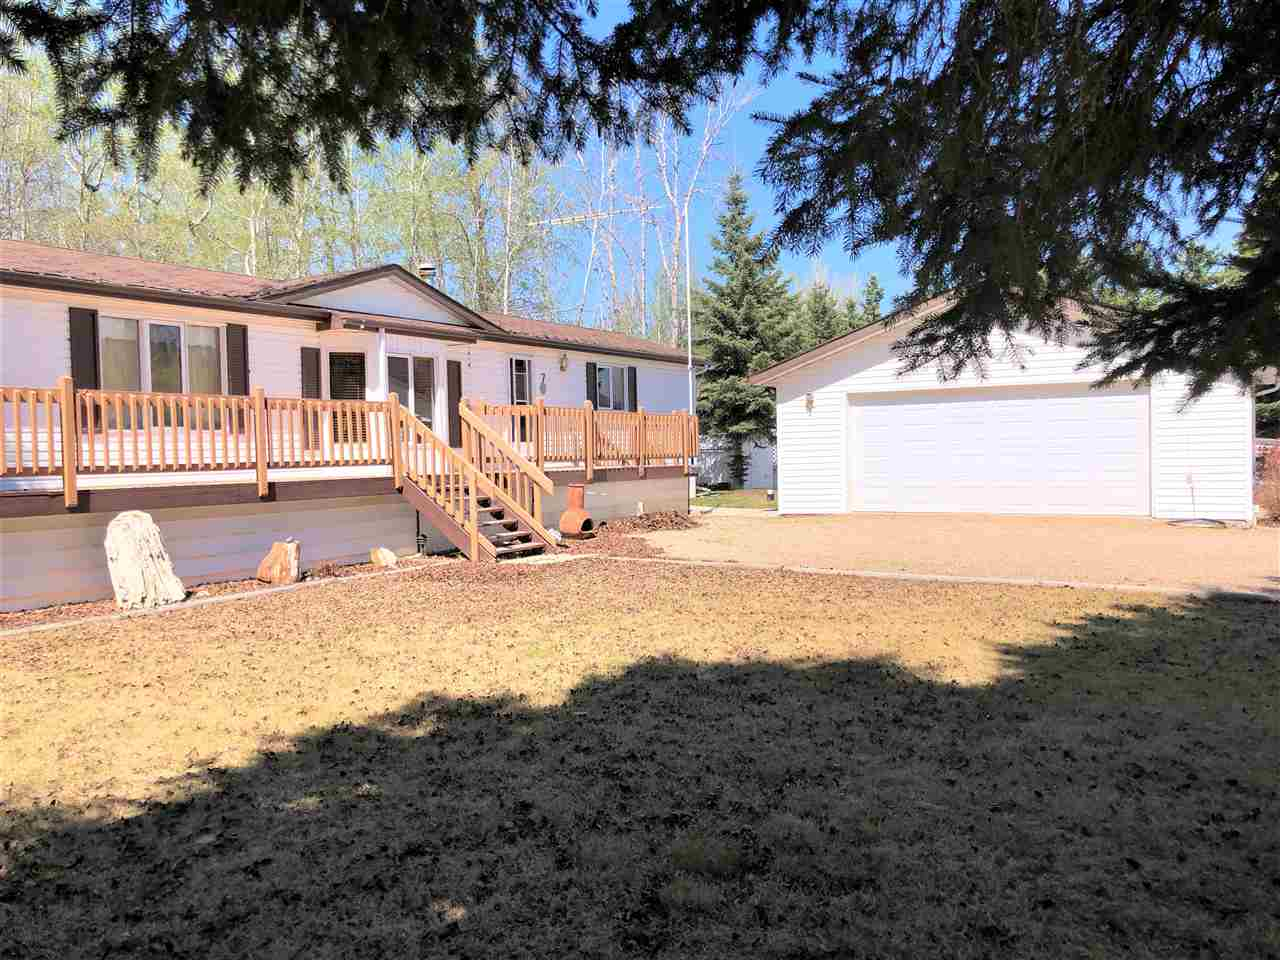 If you are a golf enthusiast or simply looking to escape to the country this is a great home or weekend retreat. Just 20 minutes east of Drayton Valley or 1 hour west of Leduc in the gated community on the Golf Course. The home has an open concept, large kitchen & living room. The master bedroom & ensuite is at opposite ends of the other 2 bedrooms & bathroom. It's a very bright kitchen with a sky light & window over the sink looking out on the treed back yard. The living room has a nice bay window bringing in the afternoon sun. Or you can sit on the 48x10 deck to enjoy the outdoors. The laundry/mud room provides access to the back deck & has 2 double closets for storage as well as cabinets above the washer/dryer. Property sits on .4 acres. The lot & home shows pride of ownership. The oversized 24x28 garage is heated & fully finished inside. The mature spruce offers privacy to the yard & home. The Club house has restaurant & lounge or enjoy the Condo club house for the pot lucks, gatherings, games, etc.